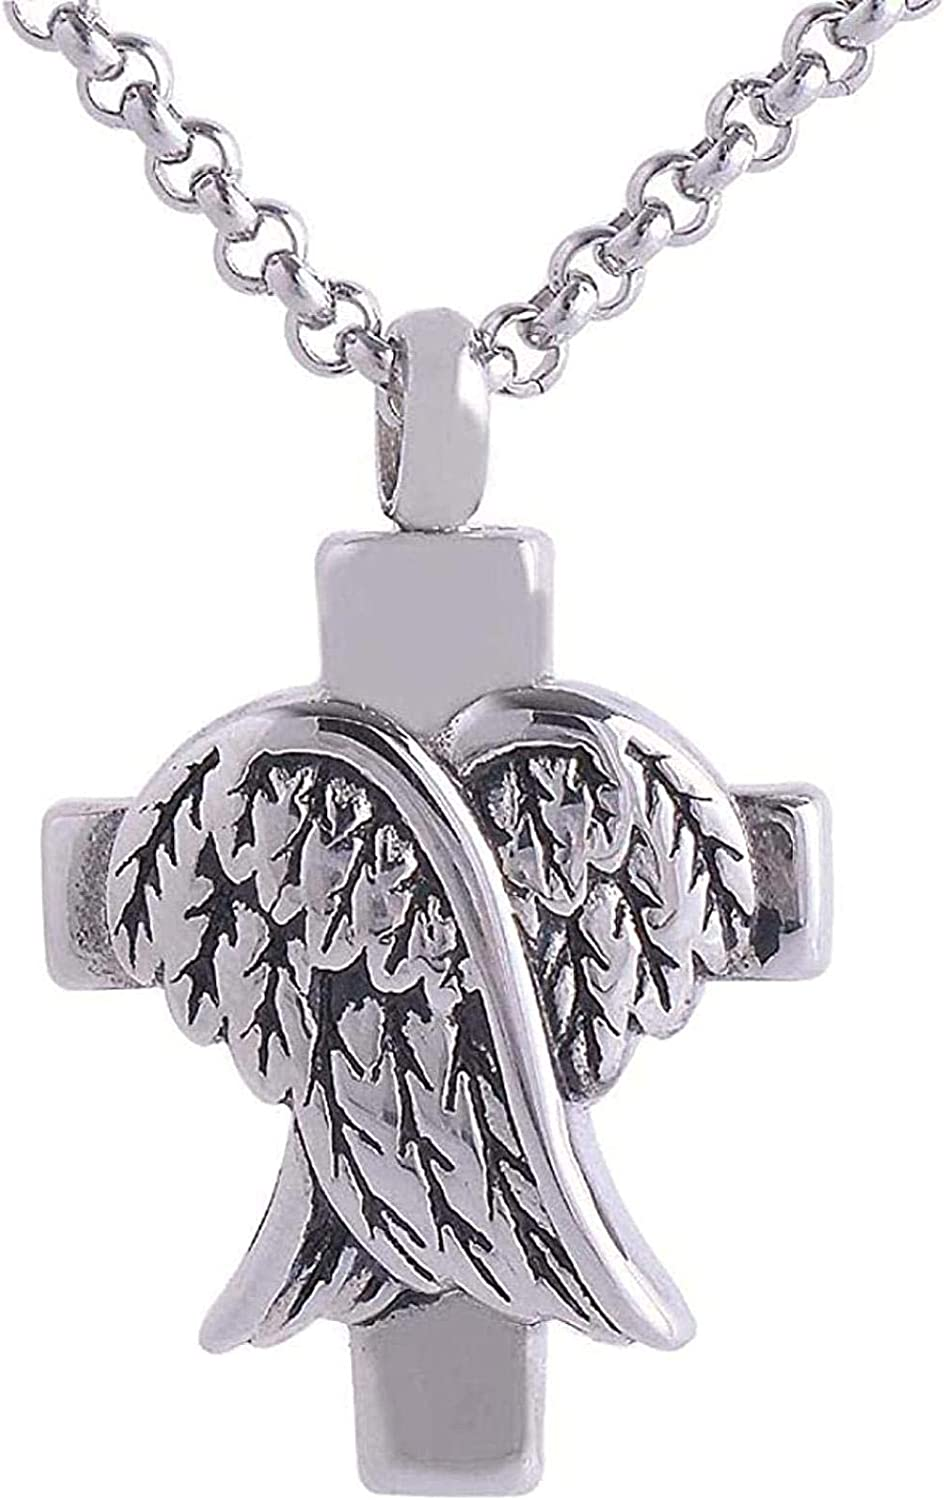 Memorial Jewelry Cremation Jewelry Urn Memorial Urn Necklace Memorial Ash Souvenir Cremation Screw Memorial Pendant Cross and Angel Wing Urn Necklace Medal Souvenir